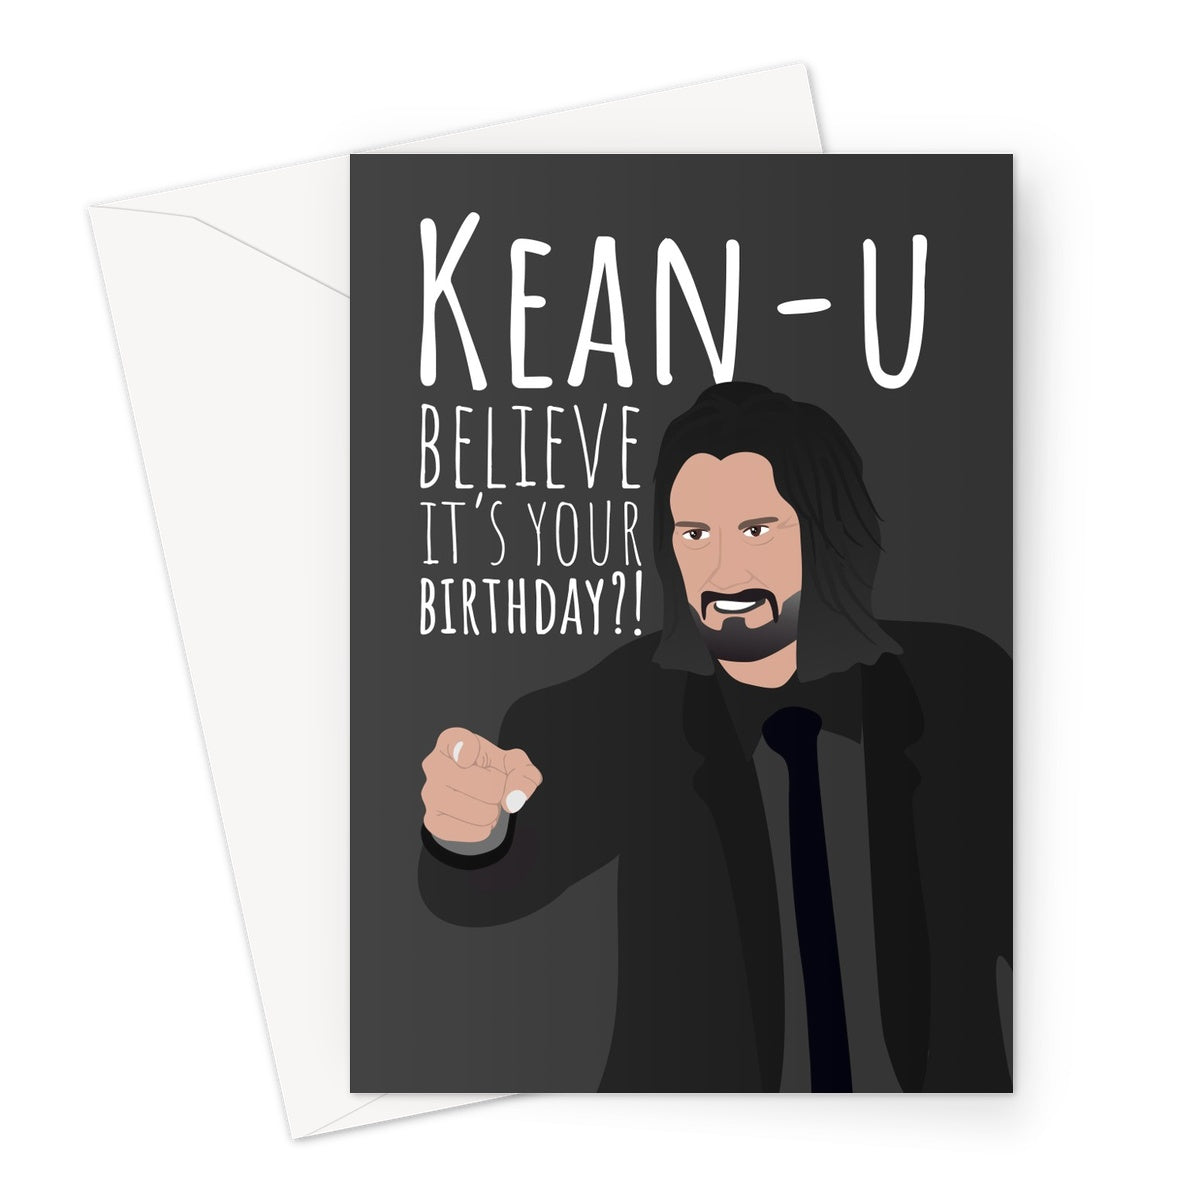 Kean - u Believe It's Your Birthday ?! Funny Happy Keanu Reeves Fan Film Movie Breathtaking   Greeting Card